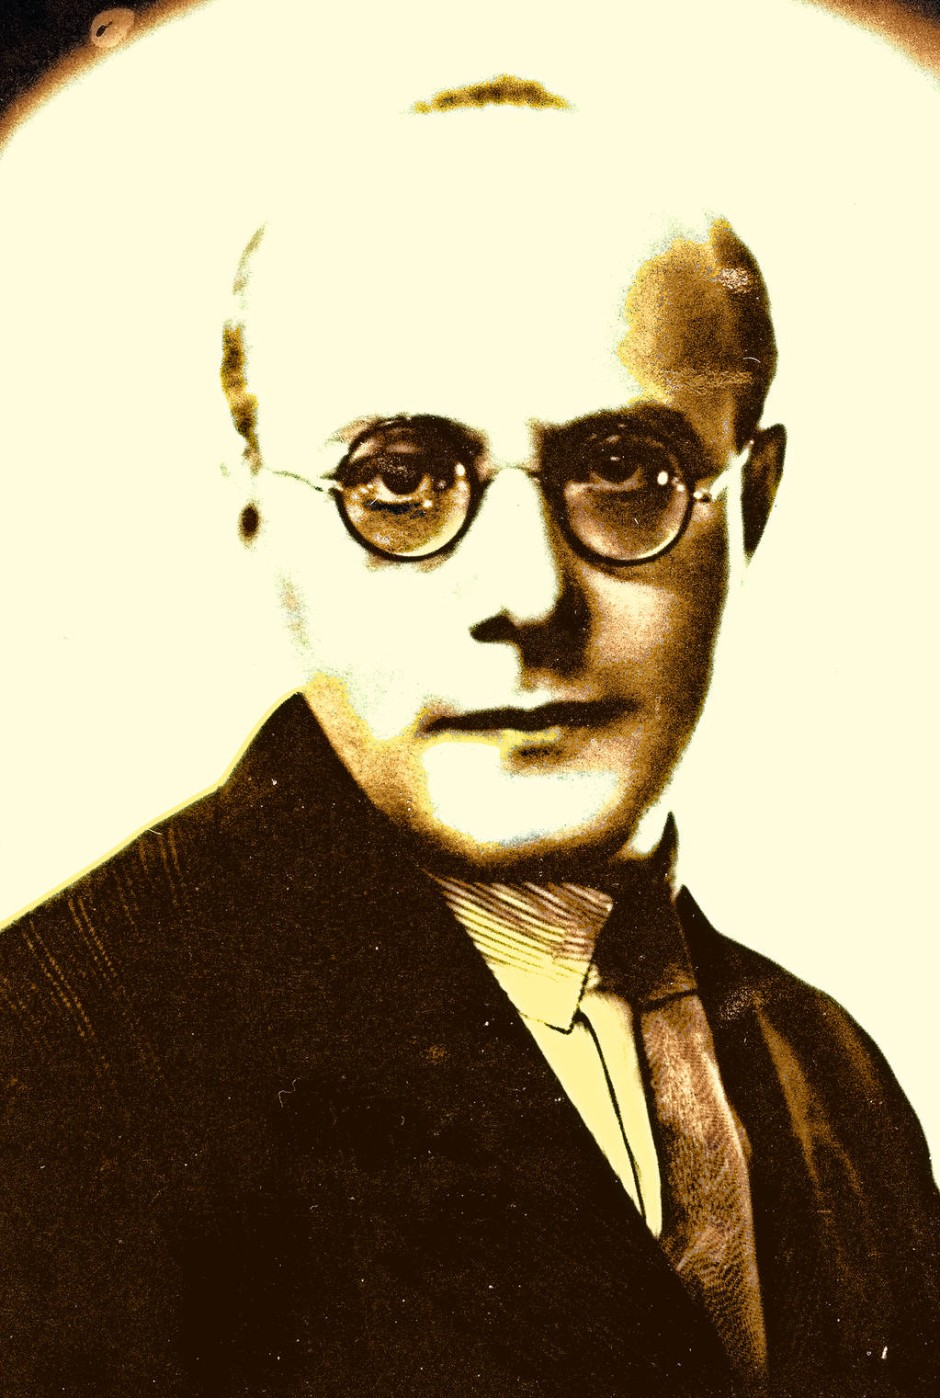 economic sociology karl polanyi s concept In reconstructing karl polanyi polanyi's work has a cross-disciplinary appeal, finding popularity in anthropology, economic history, economic sociology and political science development of his theory' - wolfgang streeck.